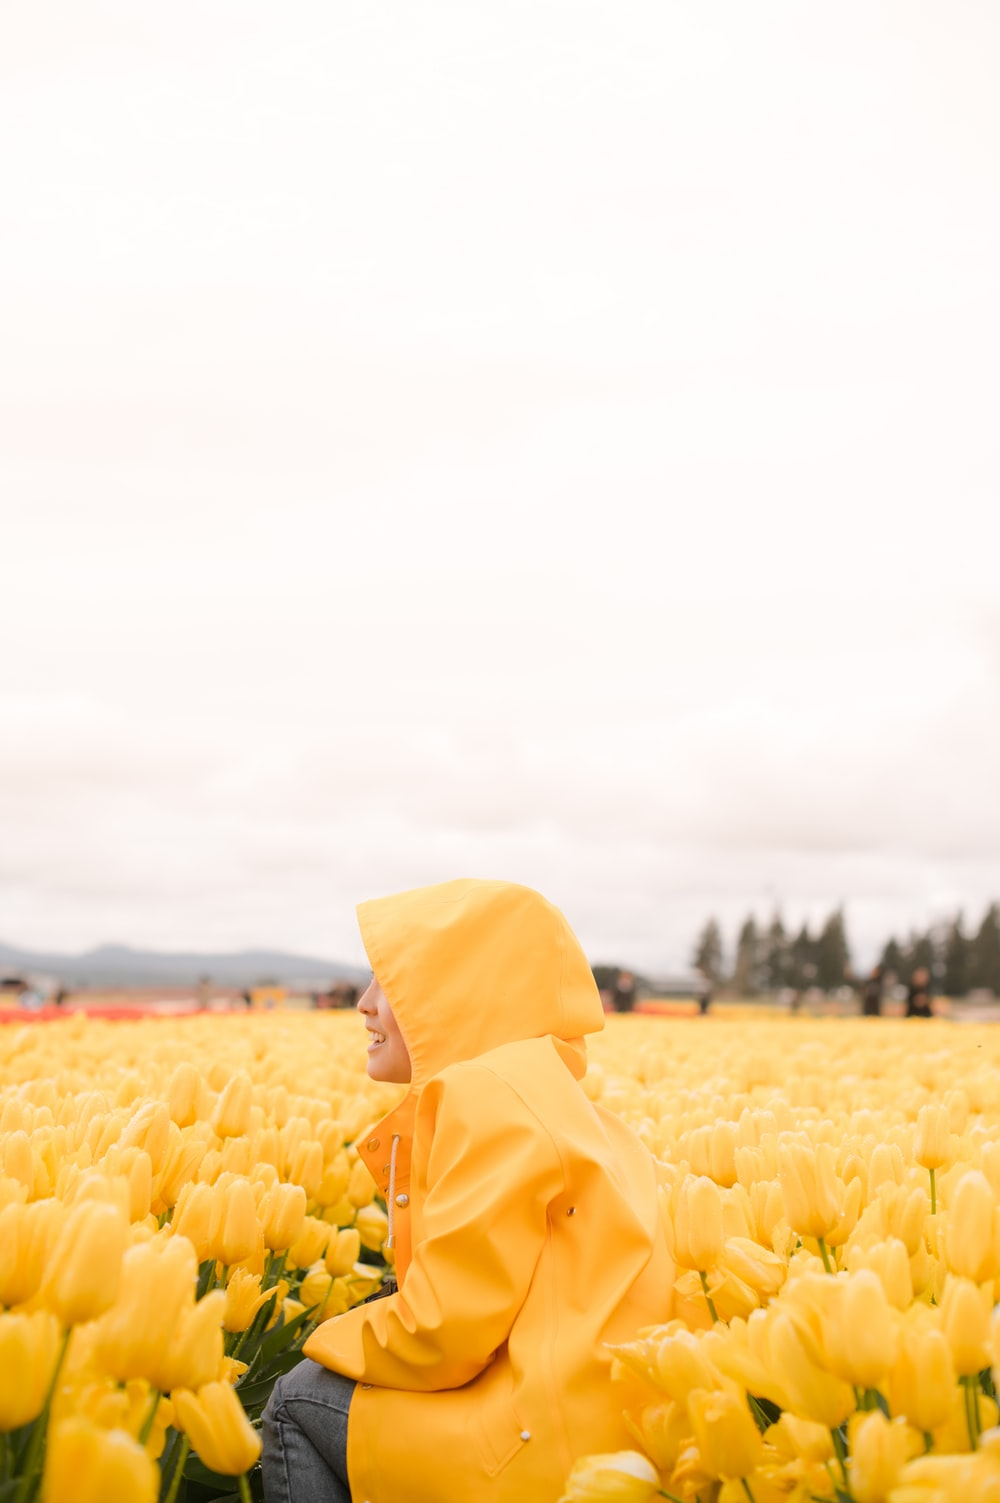 person in yellow raincoat standing on yellow tulip field